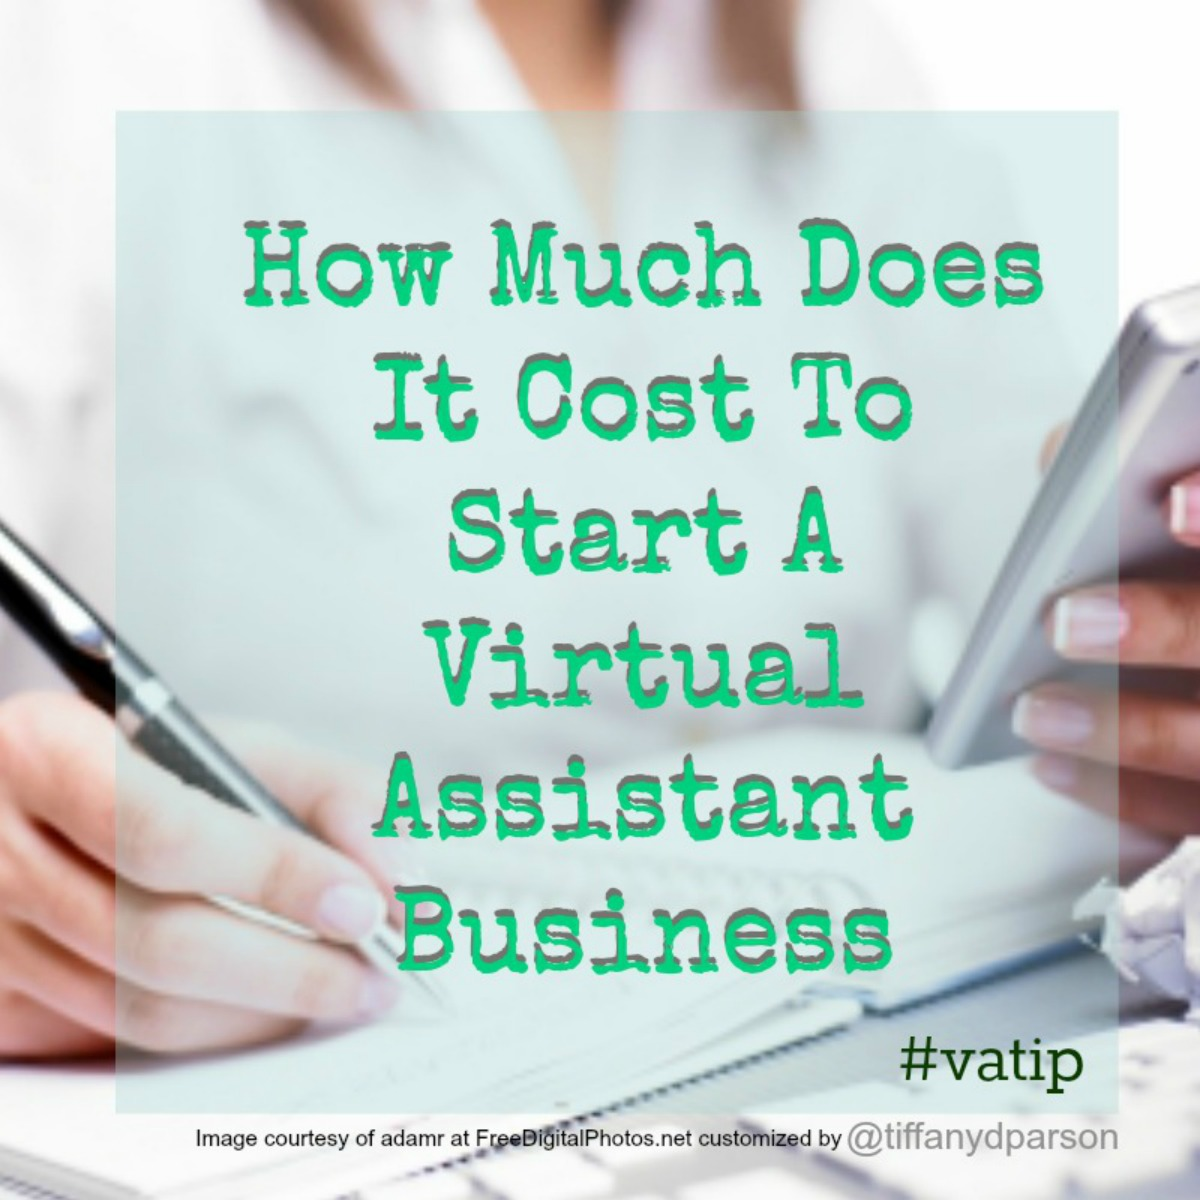 How much does virtual dating assistants cost